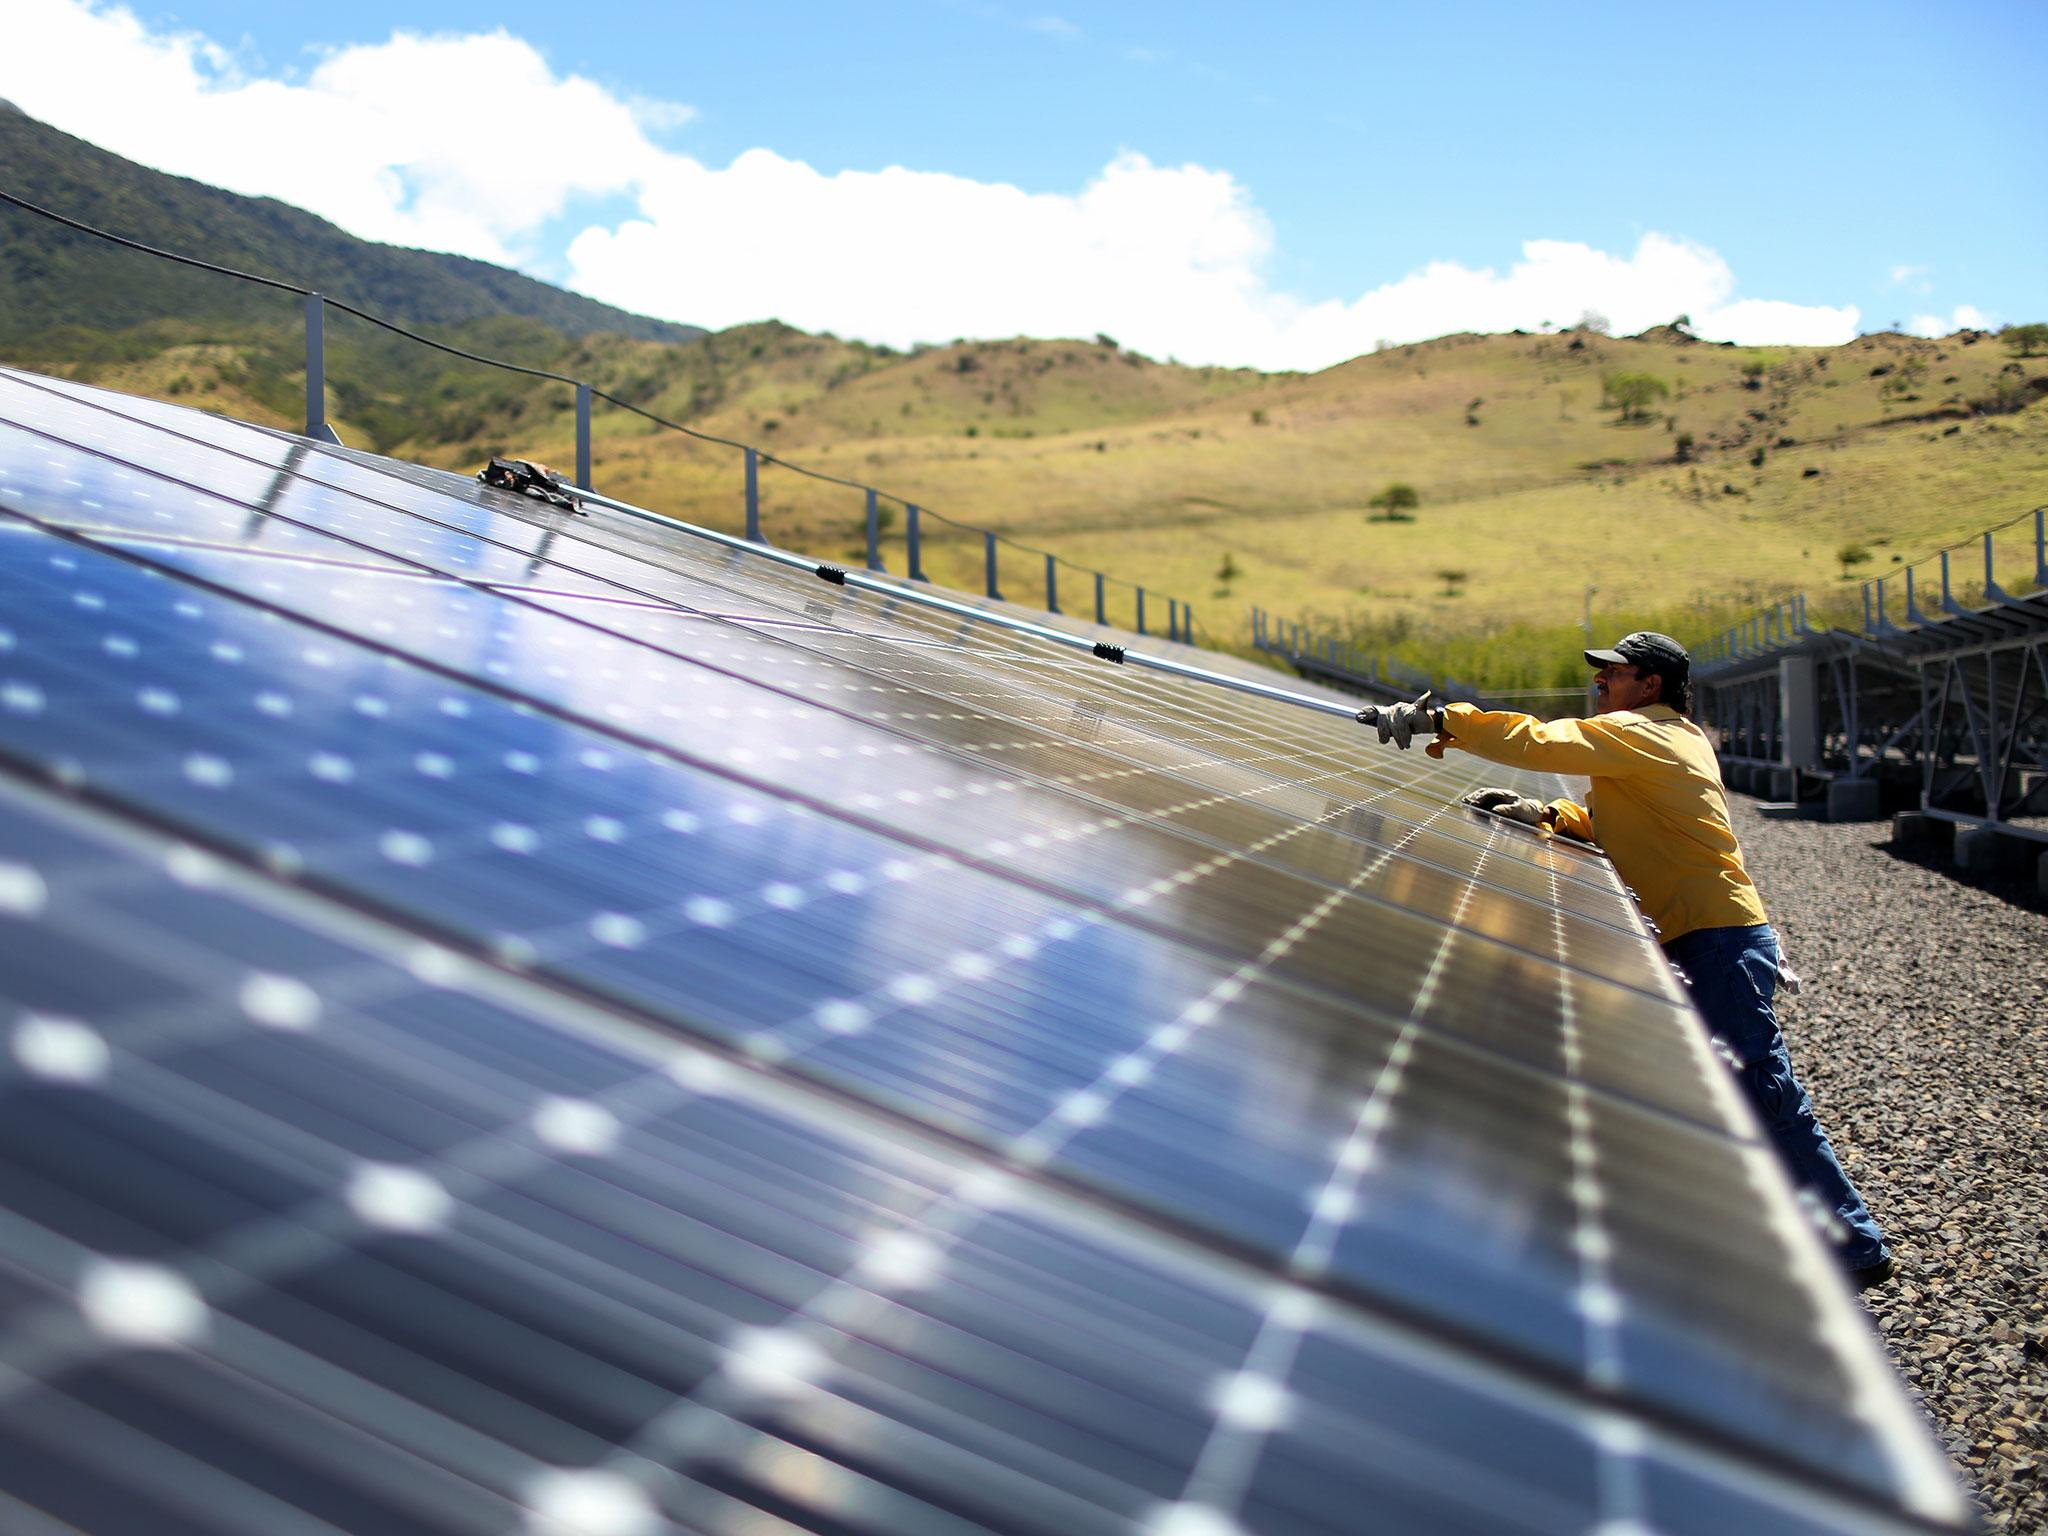 Costa Rica to ban fossil fuels and become world's first decarbonised society